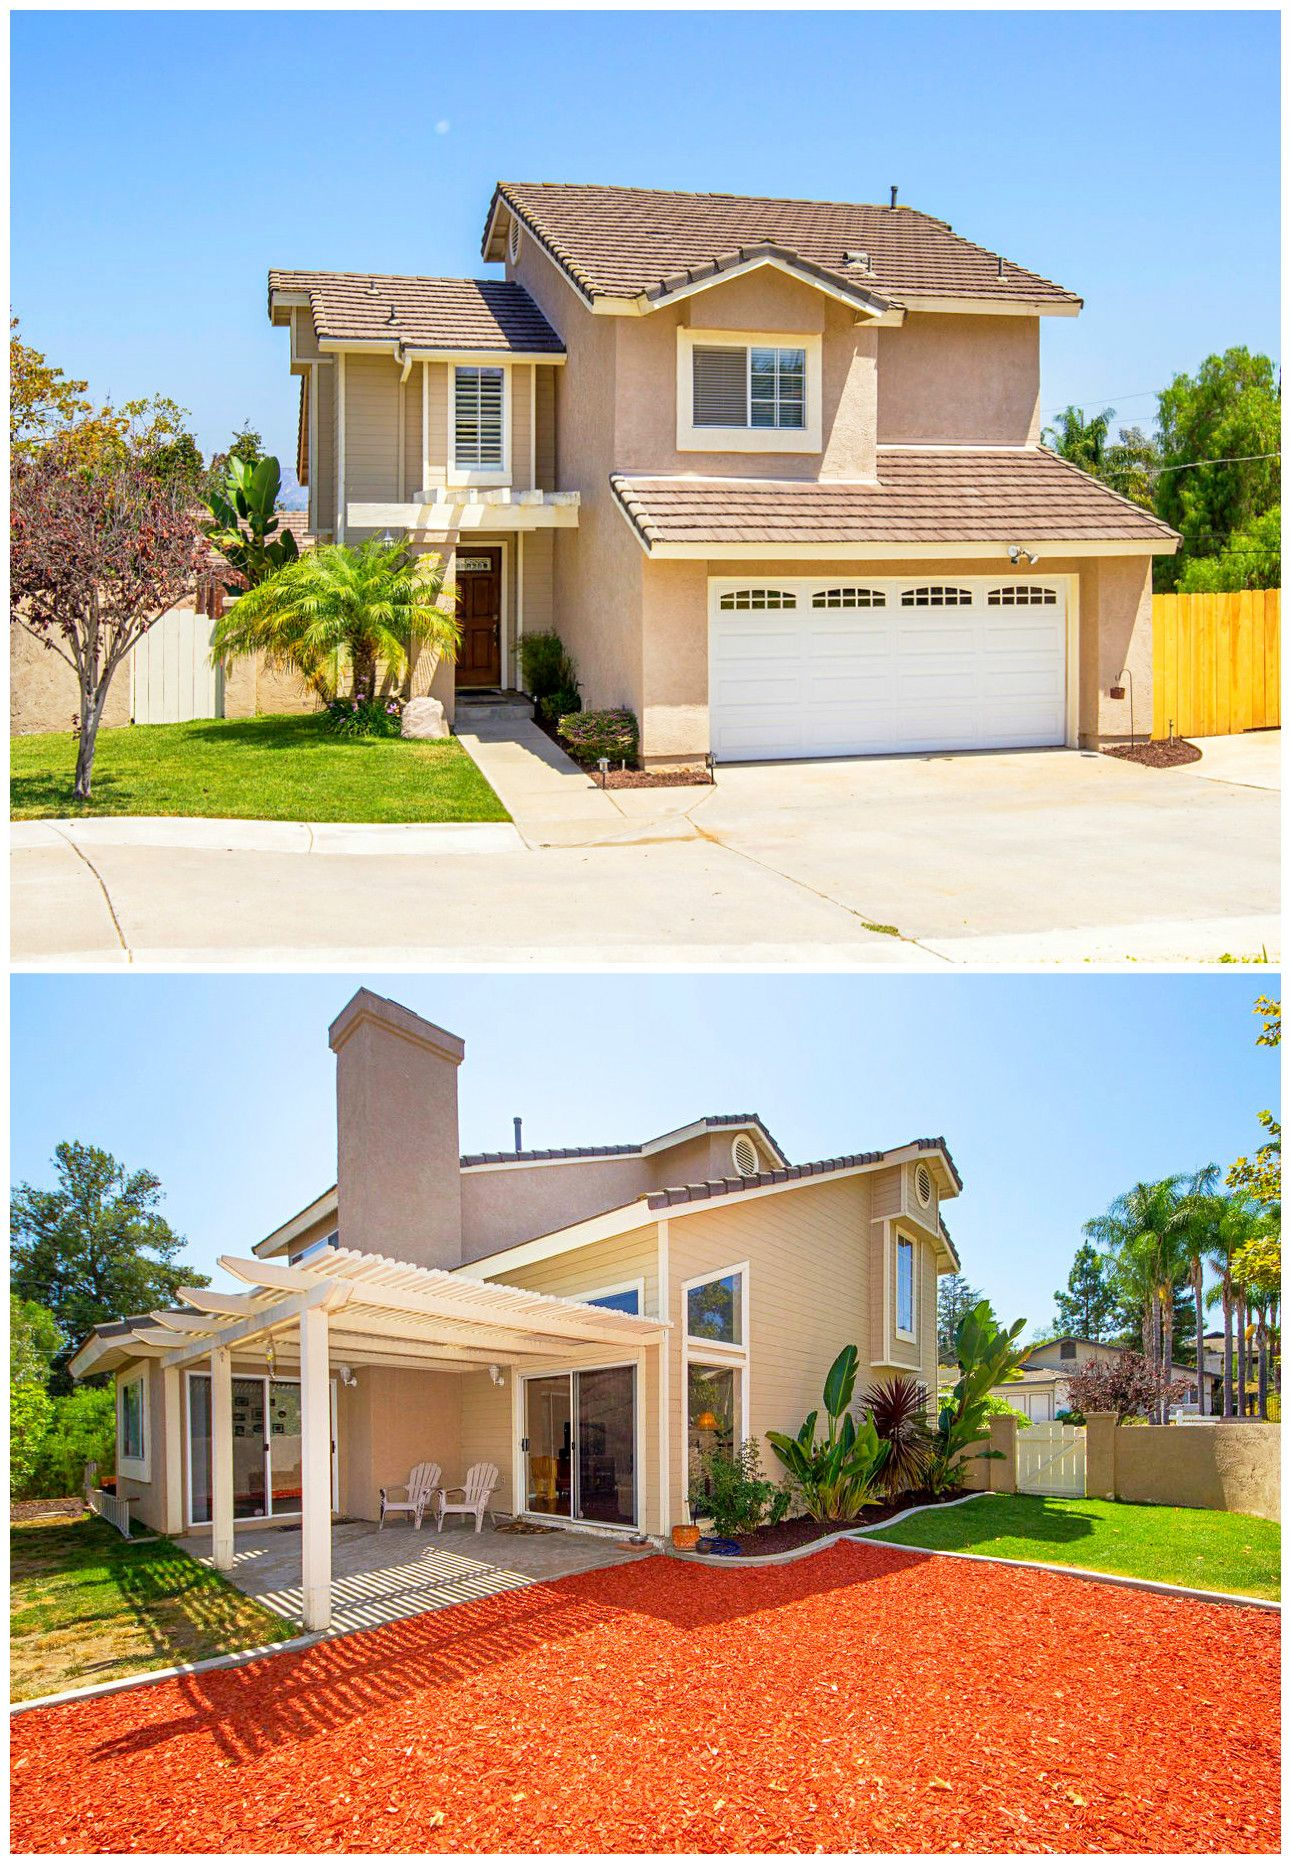 Charming Two Story Home With Open Floor Plan, Granite Counter Tops, Stainless  Steel Appliances